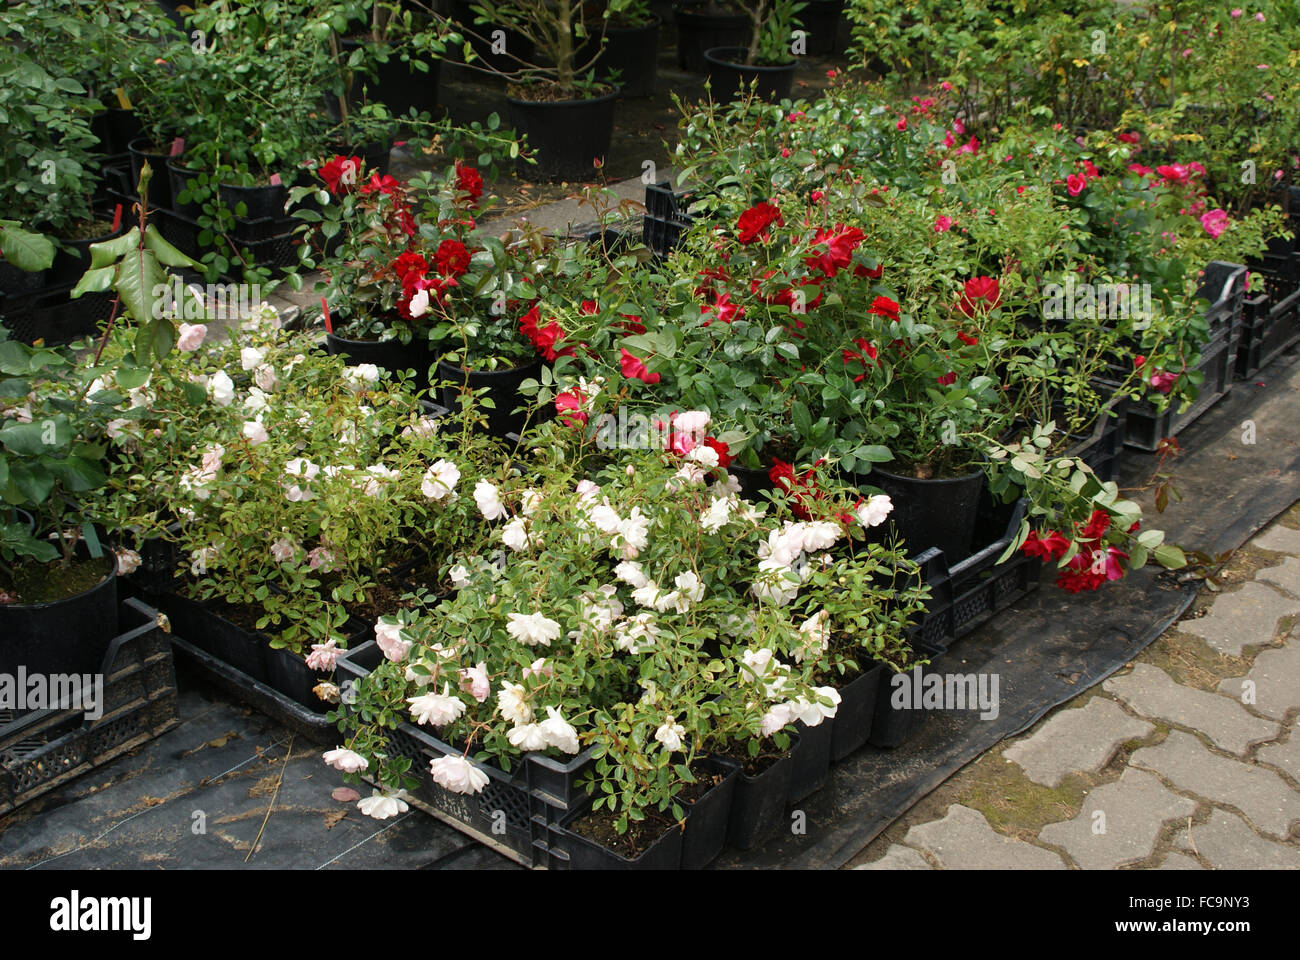 Ground cover roses in containers - Stock Image